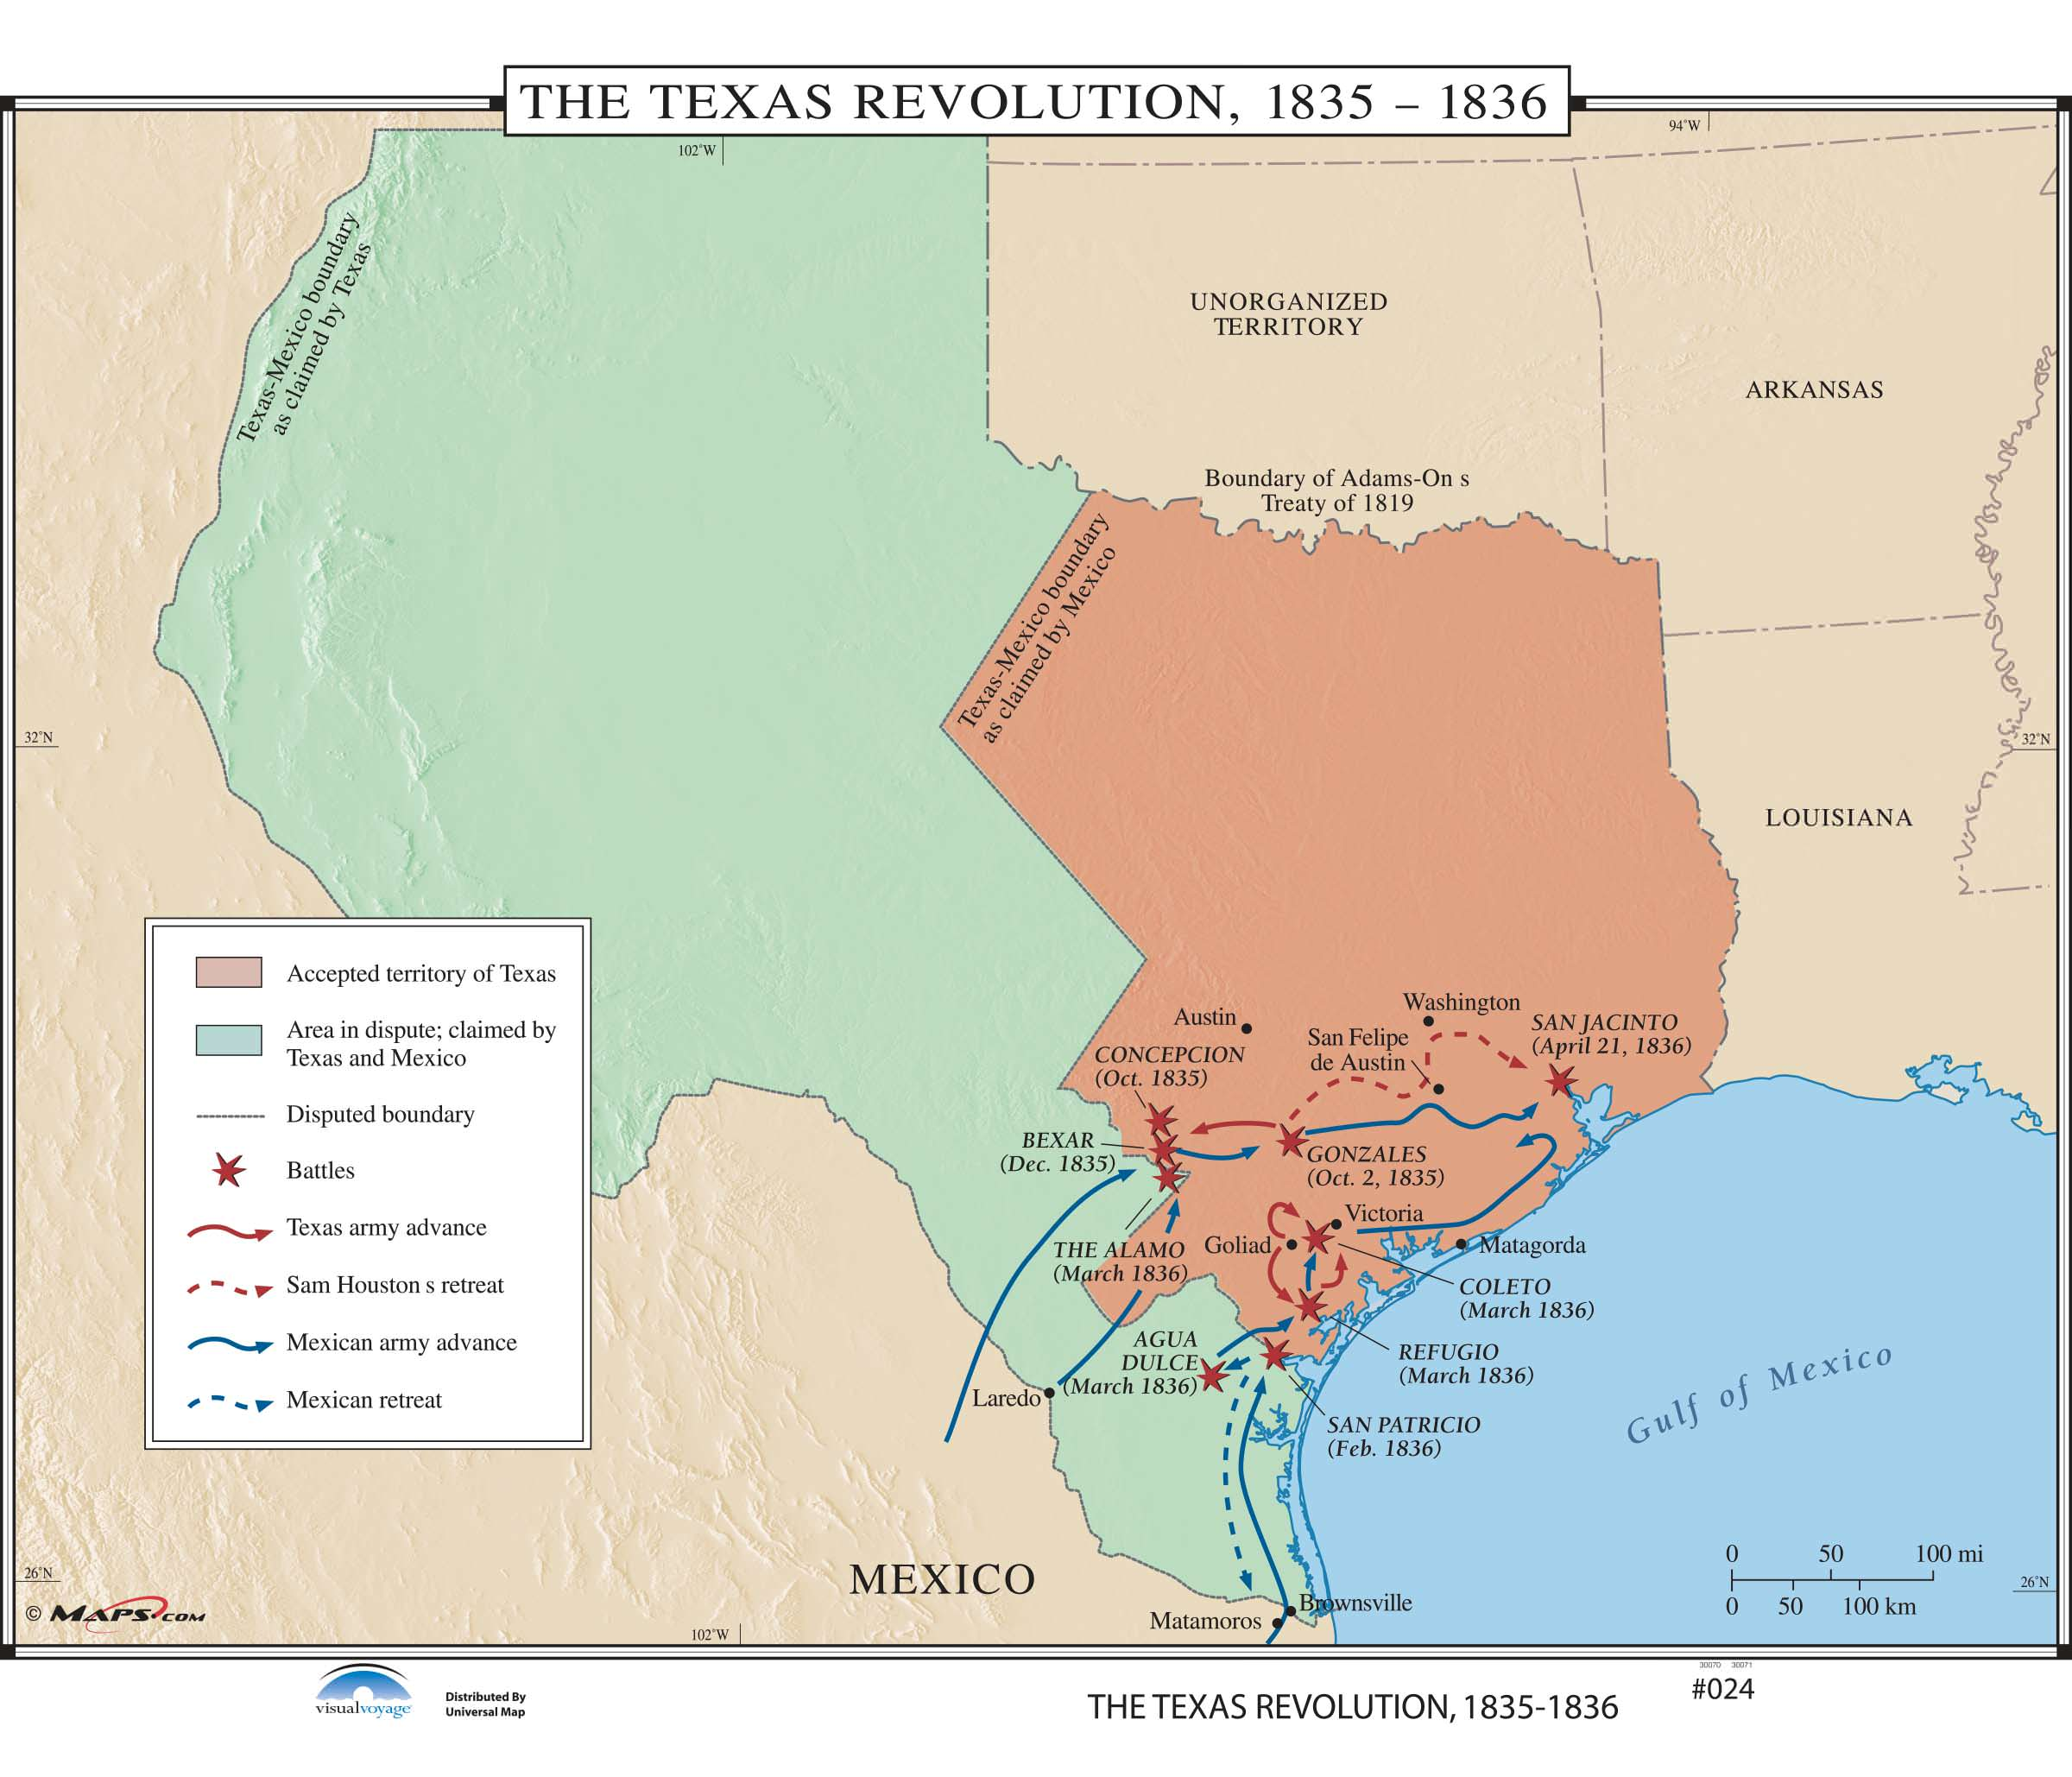 024 The Texas Revolution On Roller W